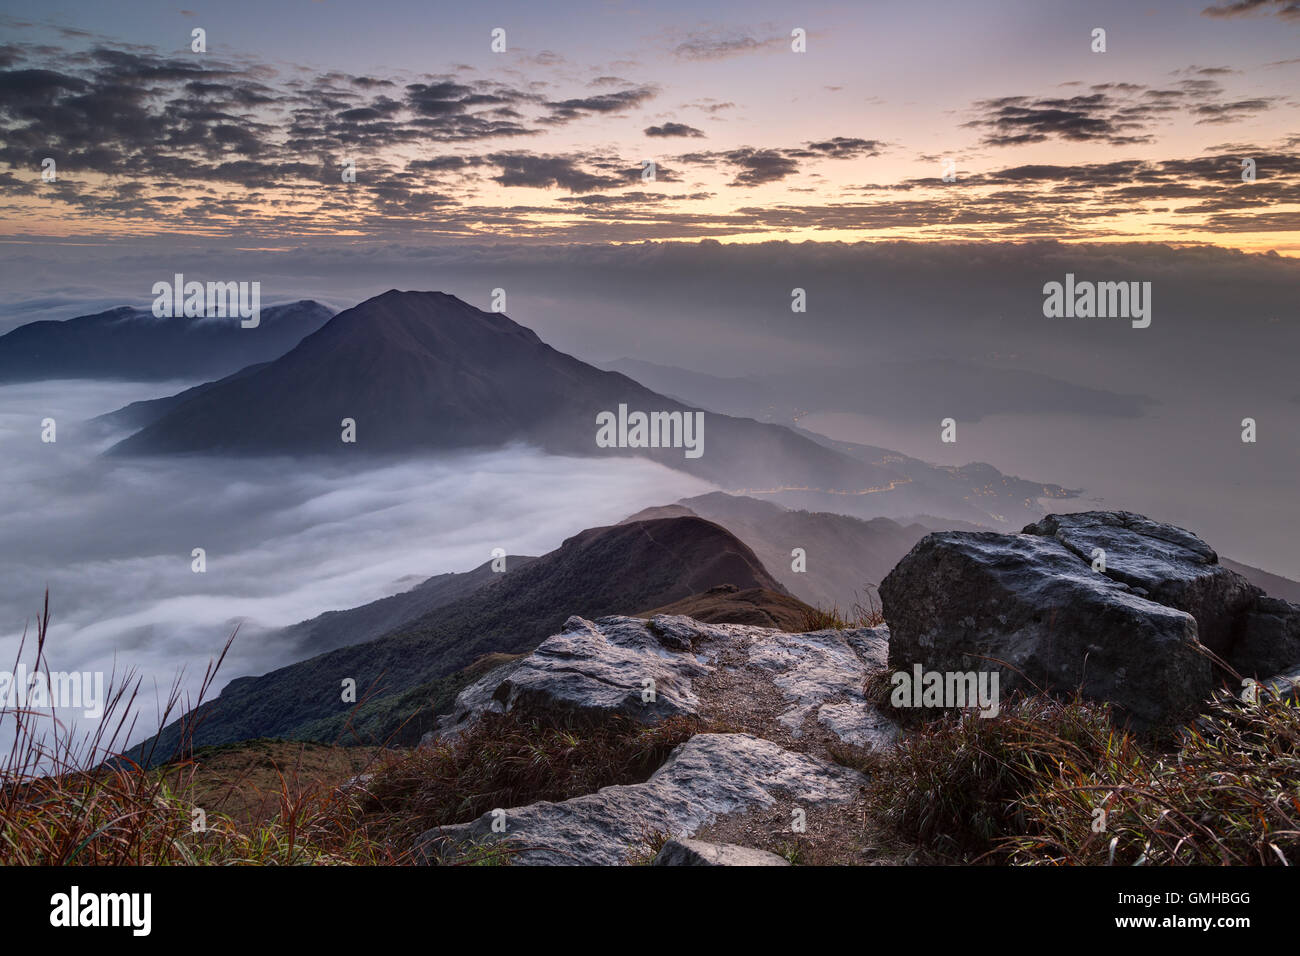 Clouds rolling over mountain on Lantau Island, viewed from the Lantau Peak (the 2nd highest peak in Hong Kong, China) - Stock Image